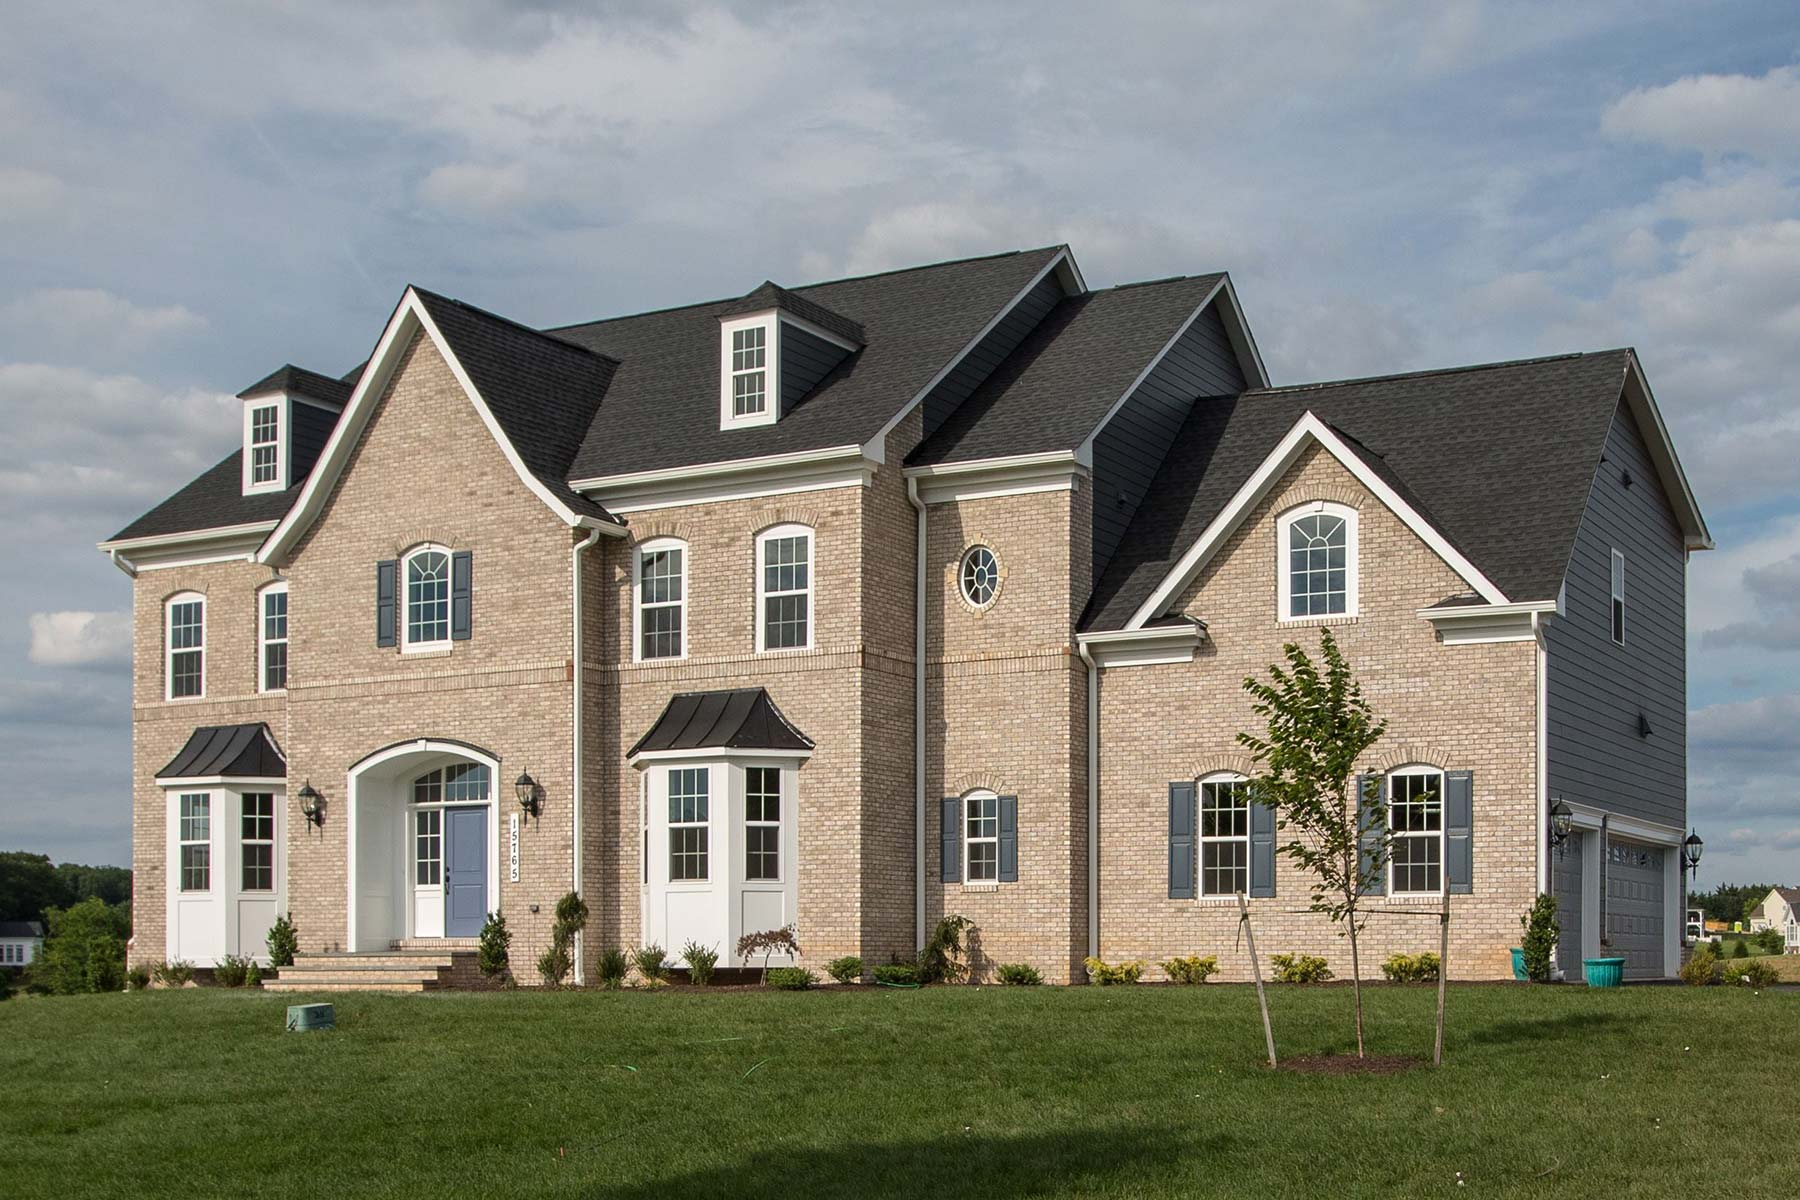 Exterior, Finished Custom Home, Kenwood, Black Rock, Craftmark Homes